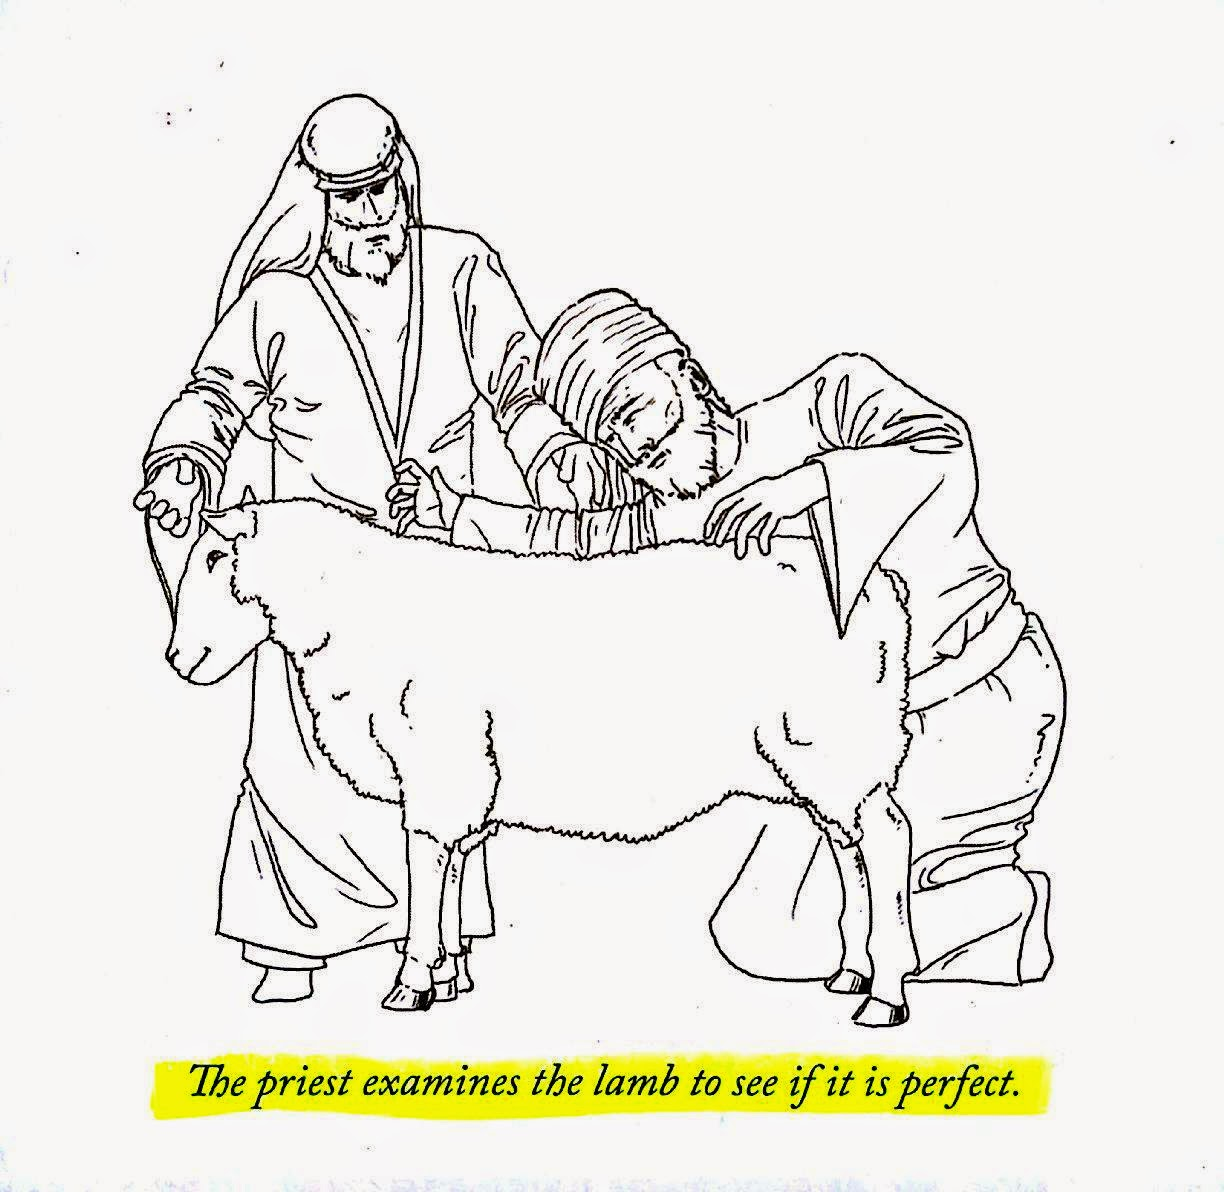 JOSEPH PRINCE'S ANIMATION OF THE LAMB OF GOD BEING SLAUGHTERED !